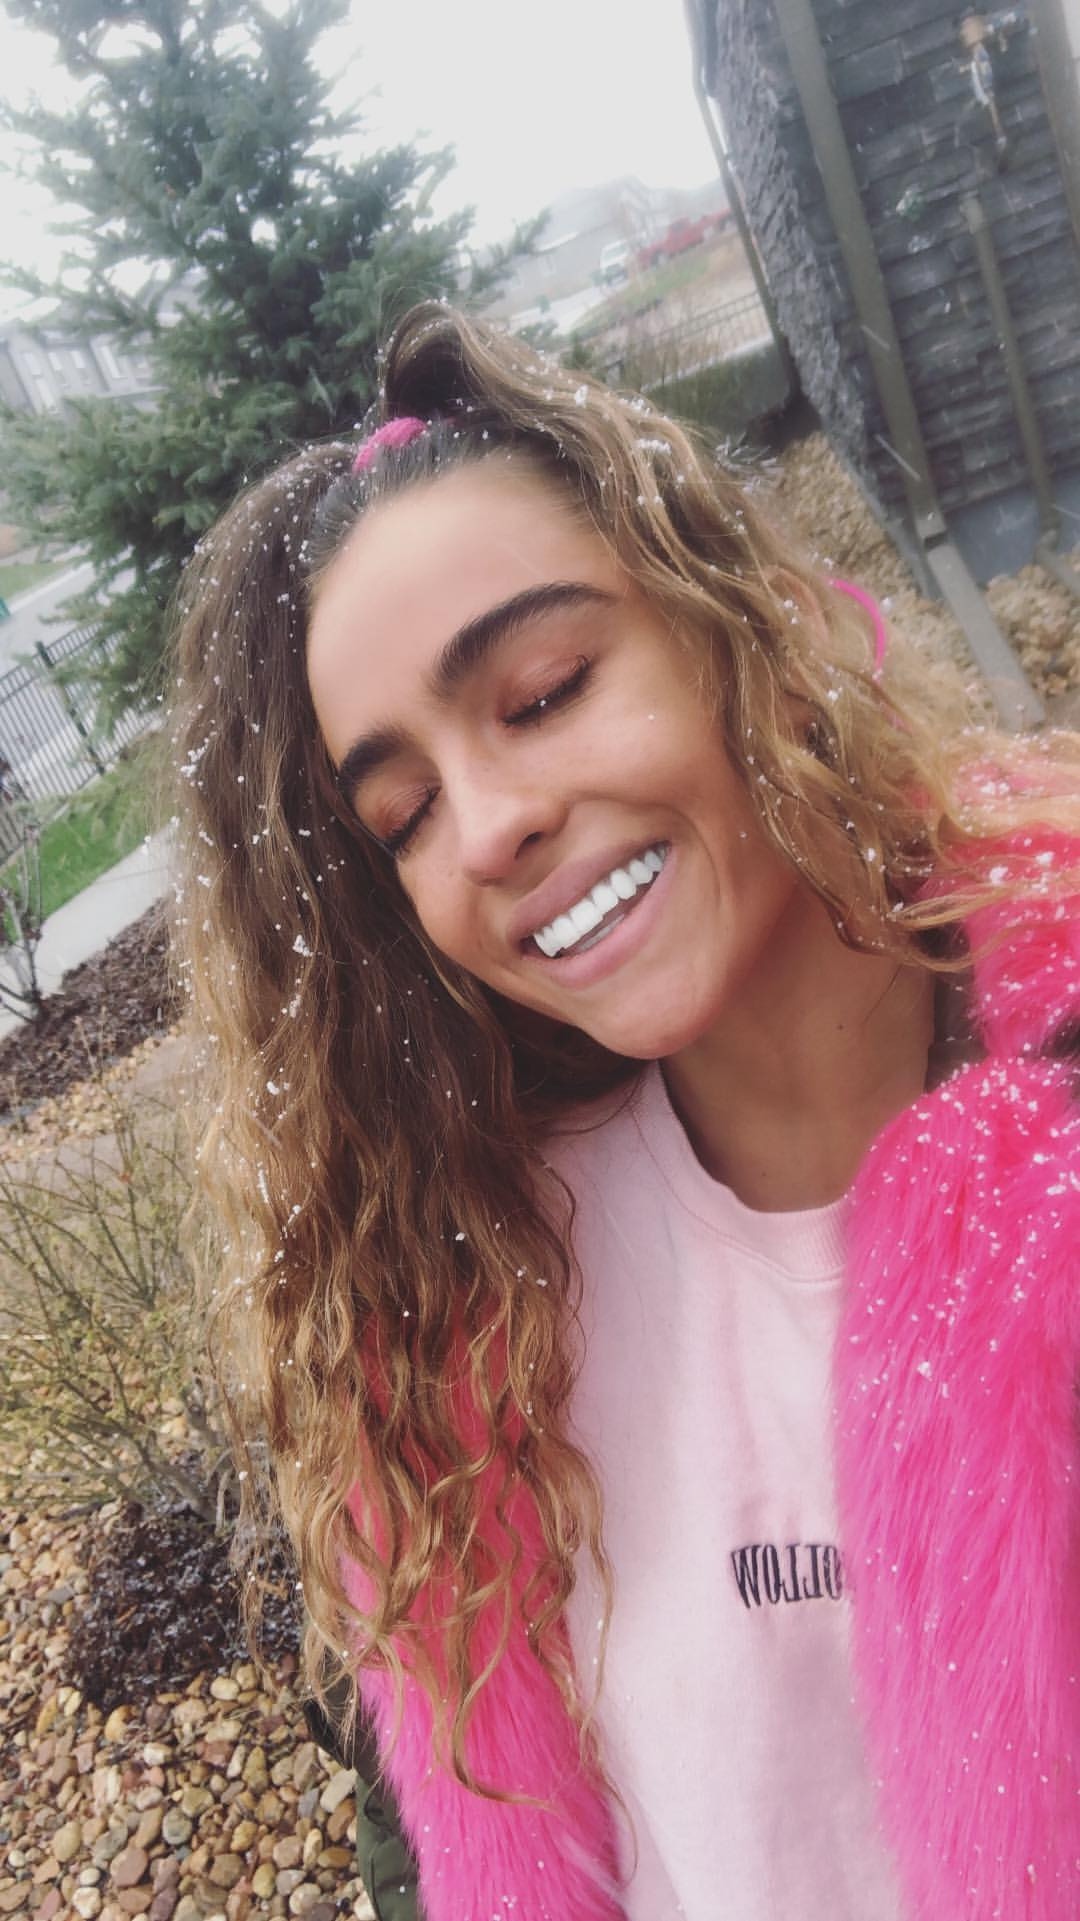 Sommer Ray 1080p Wallpapers: Sommer Ray Sexy Pictures (44 Pics)